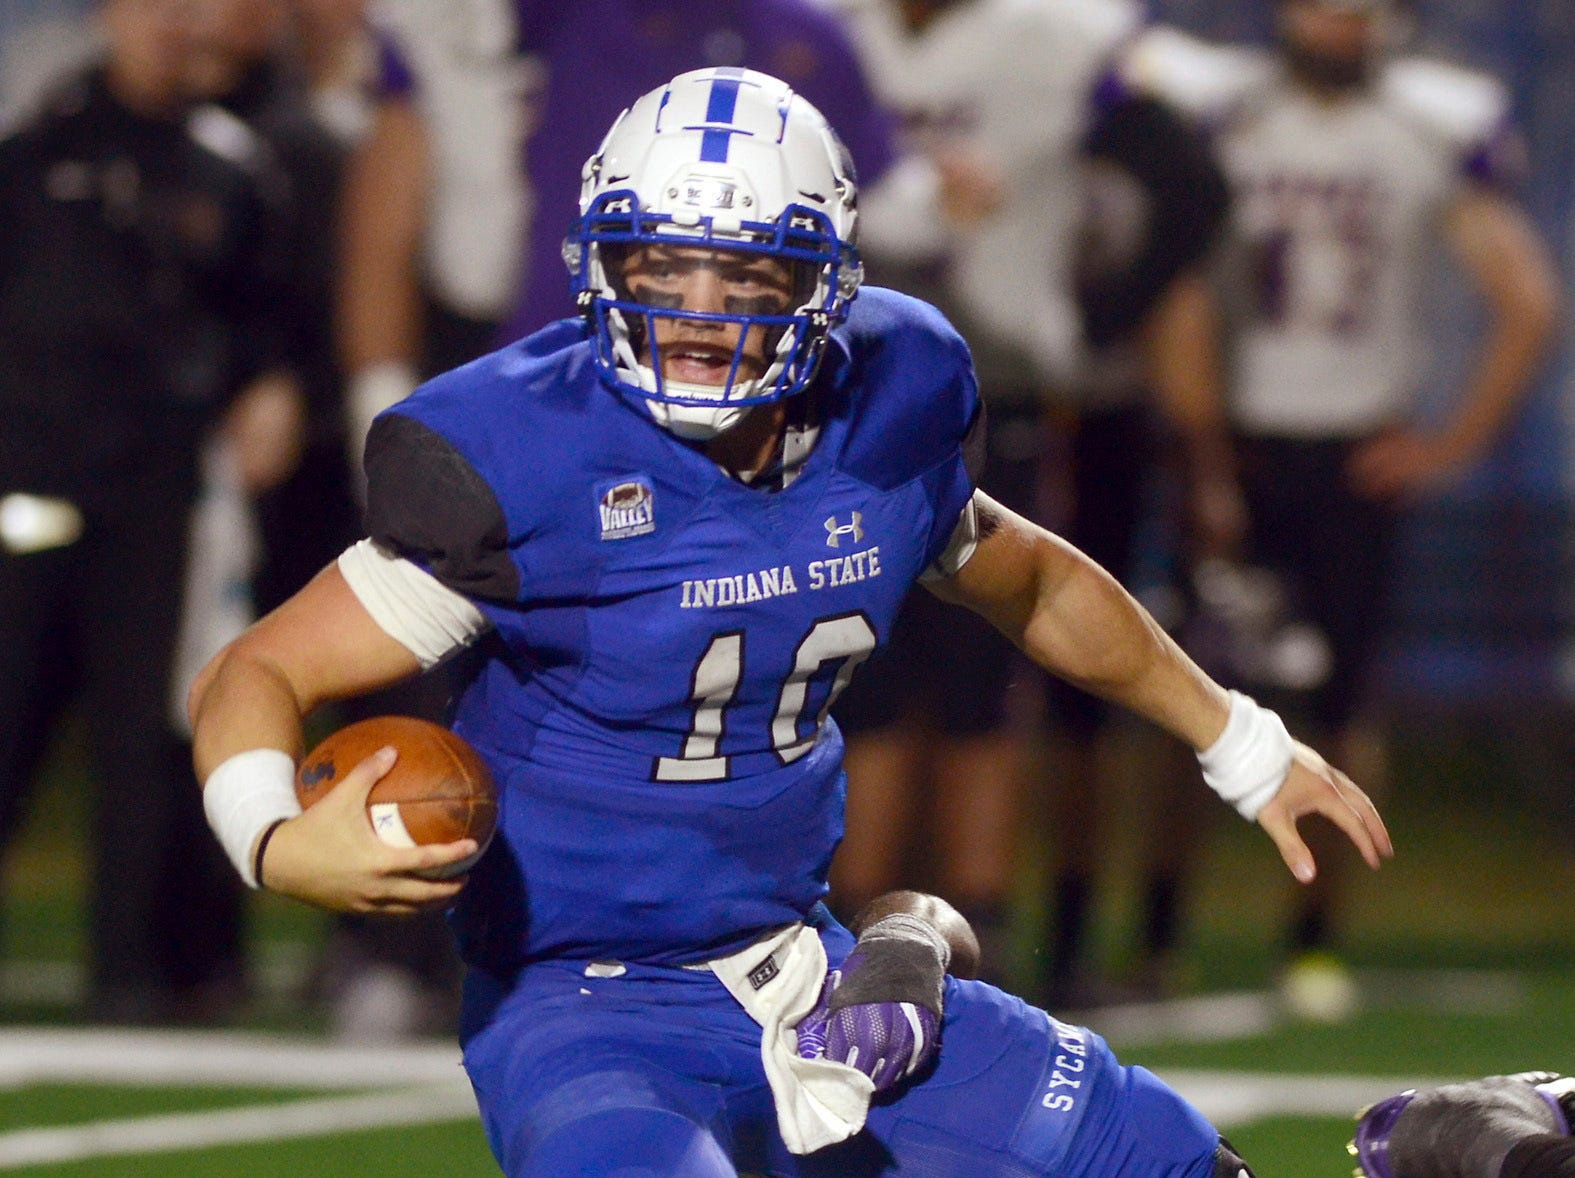 Indiana State quarterback Ryan Boyle is sacked by Northern Iowa's Brawntae Wells during the second half of an NCAA college football game Thursday, Sept. 27, 2018, in Terre Haute, Ind.